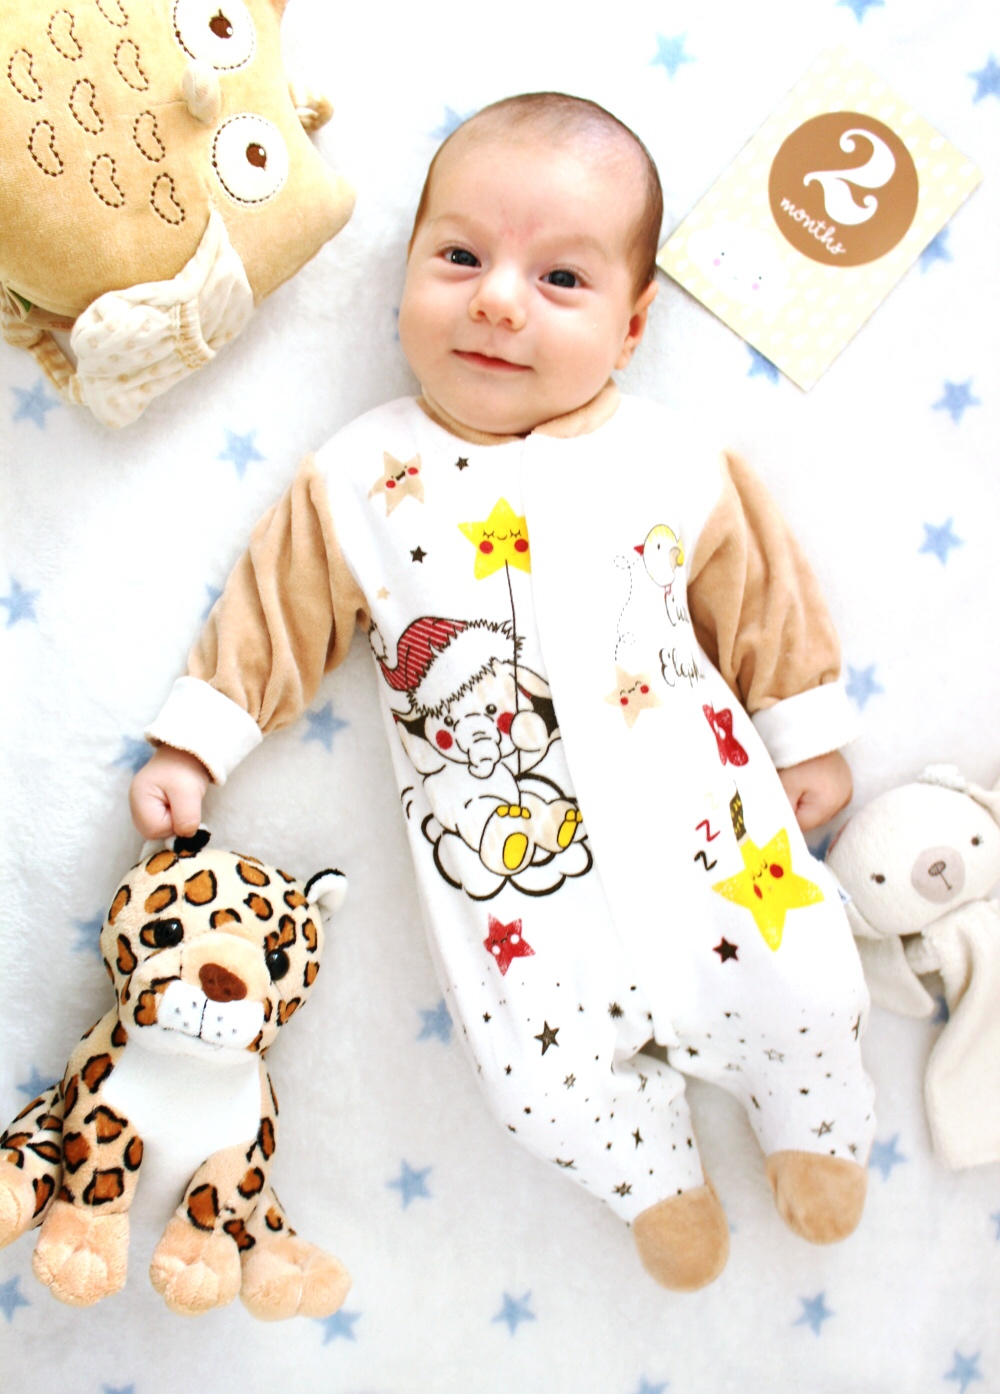 2 months old baby boy photos, newborn baby fashion clothes